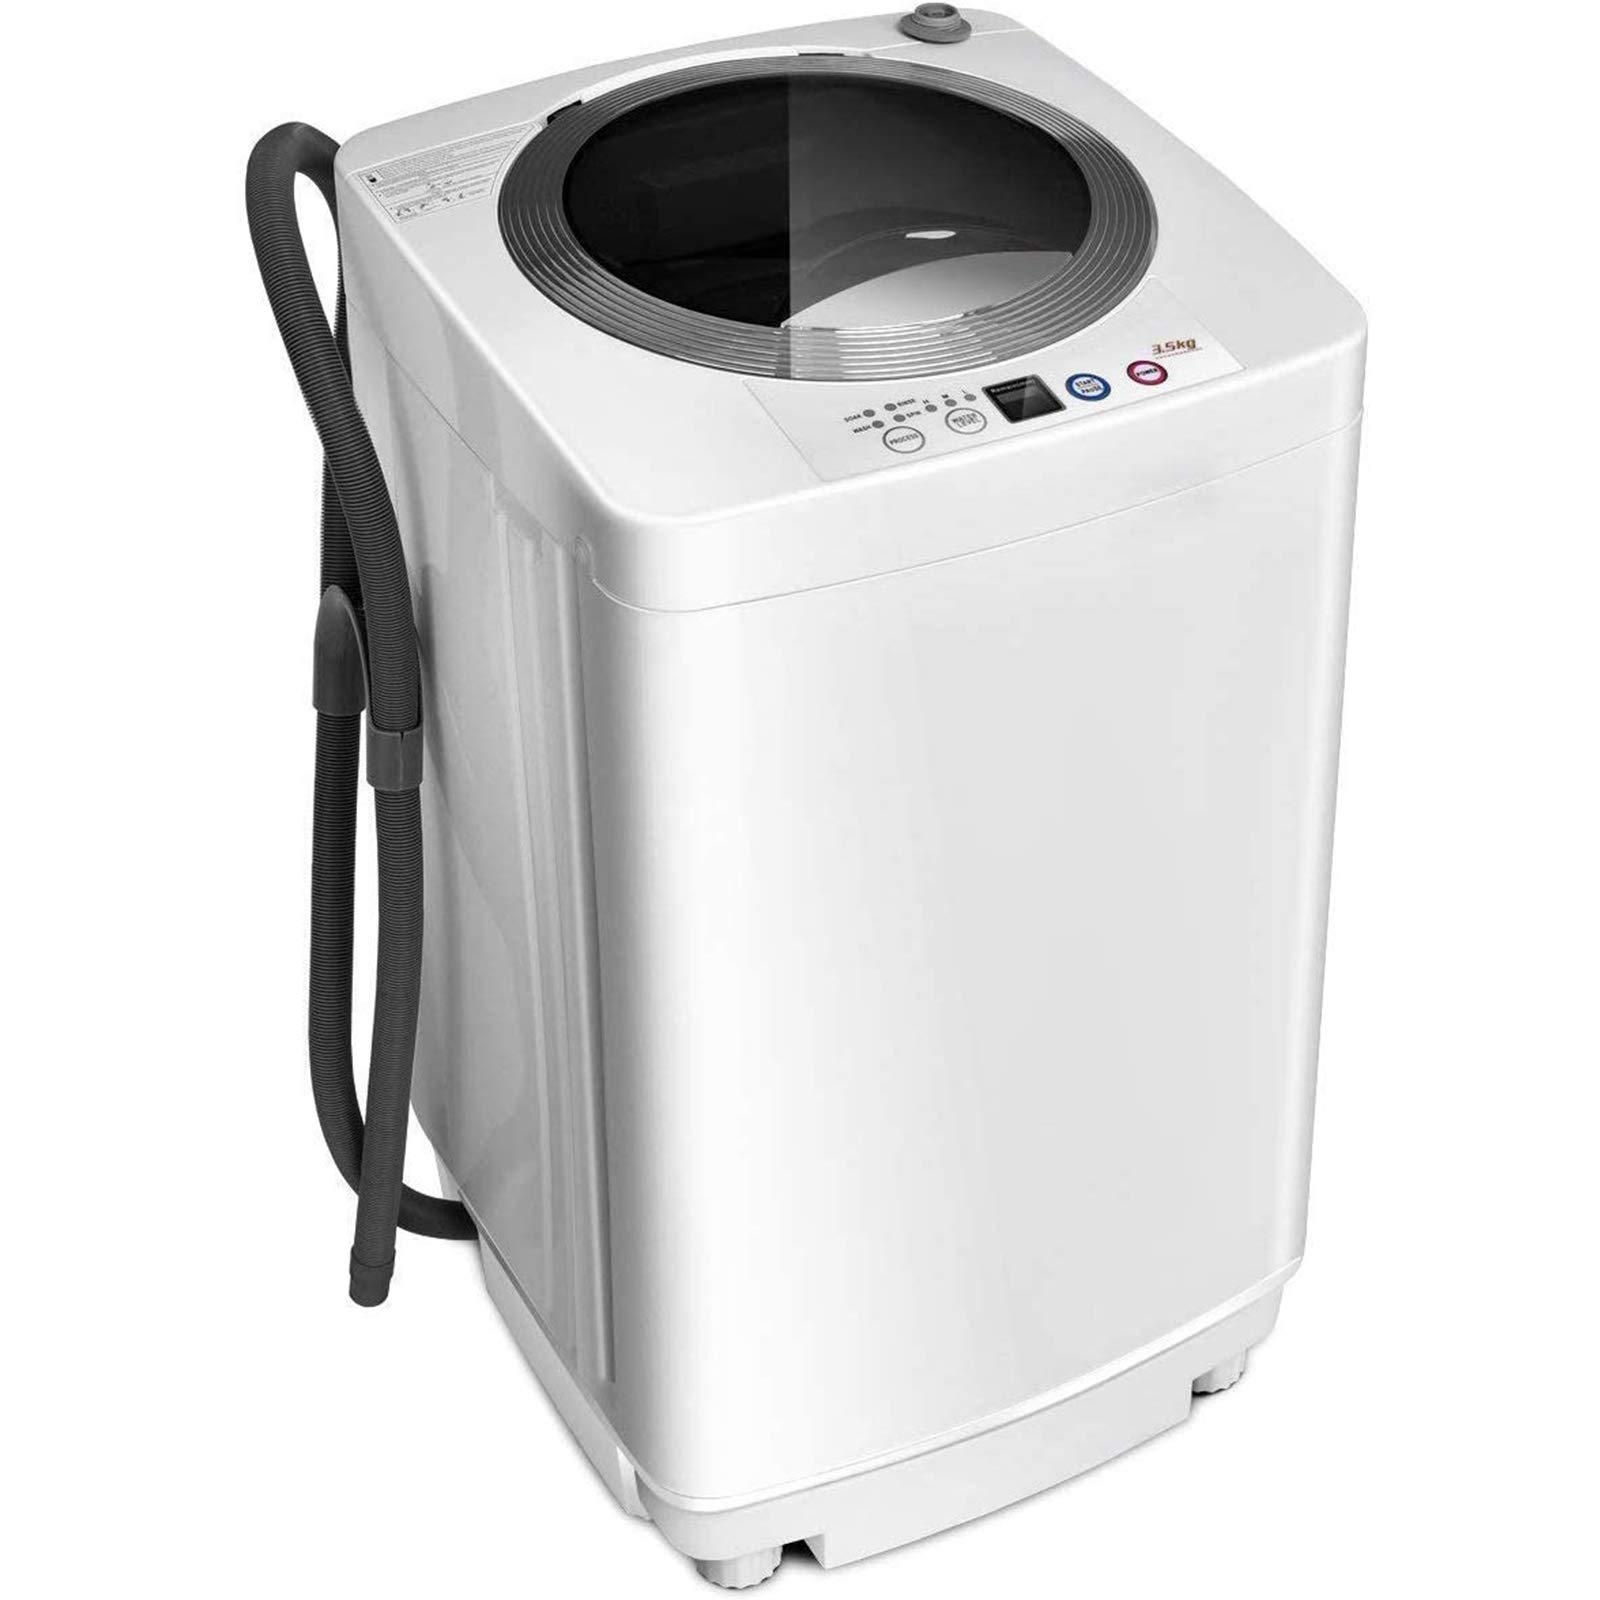 ARLIME Portable Compact Full-Automatic Washing Machine Laundry 8 lbs Load Capacity Washing Machine Washer/Spinner With Drain Pump